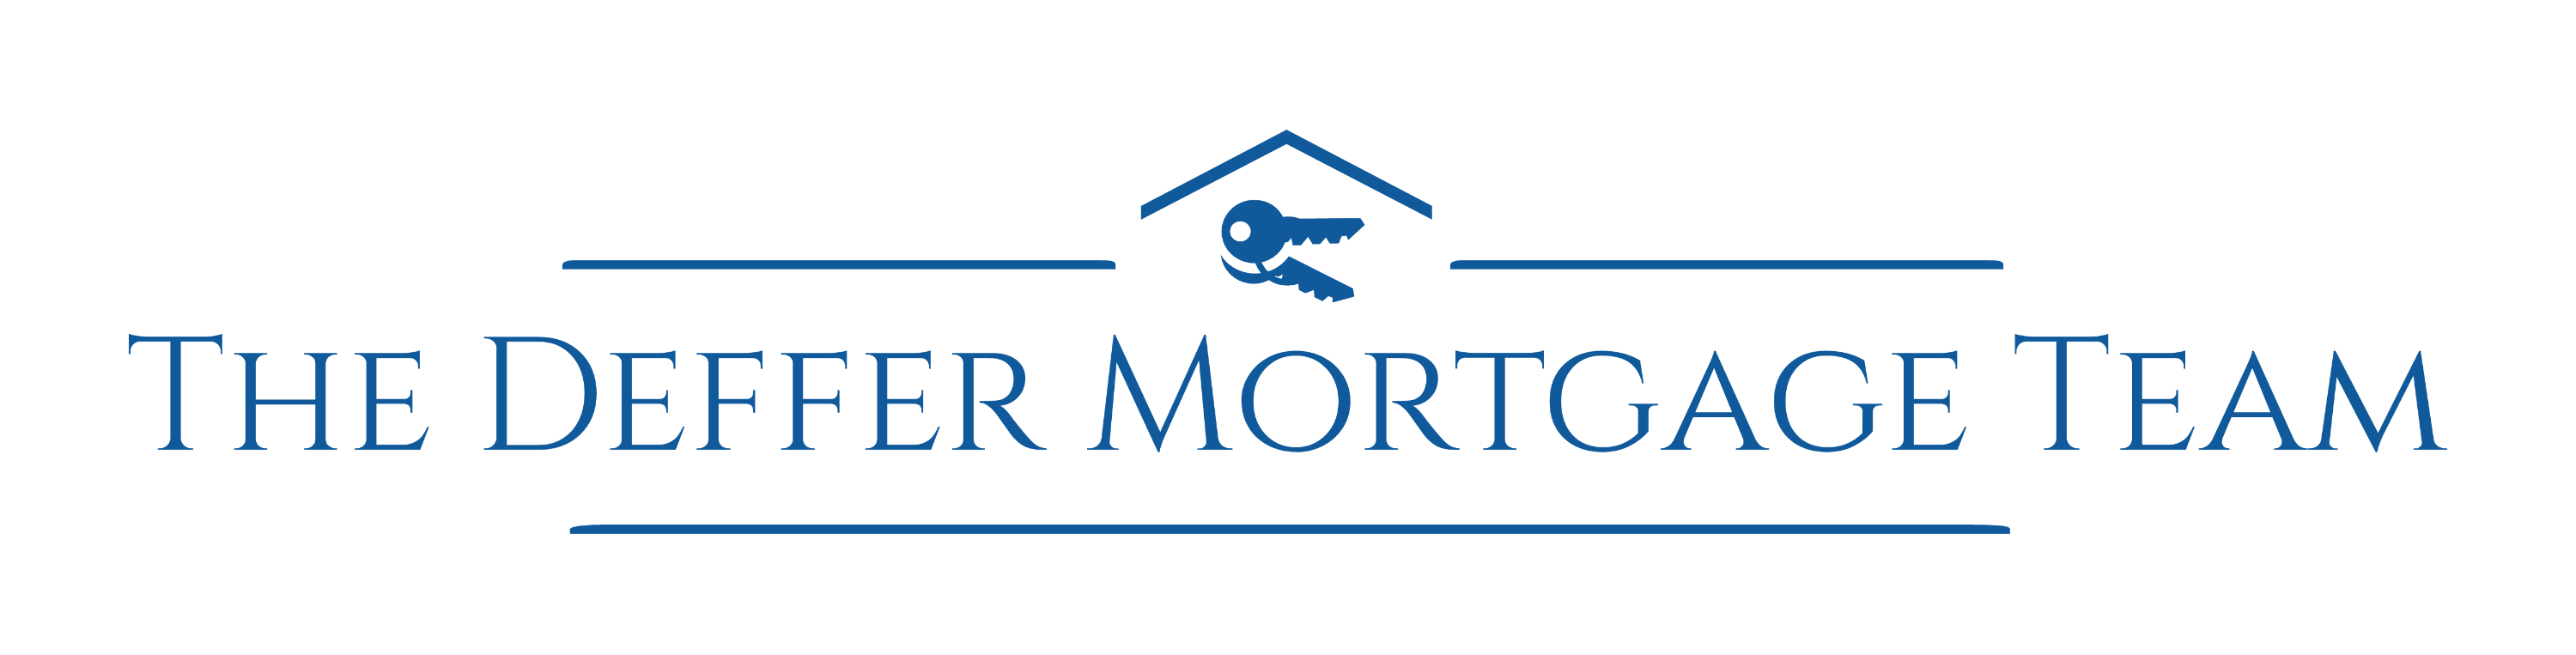 The Deffer Mortgage Team